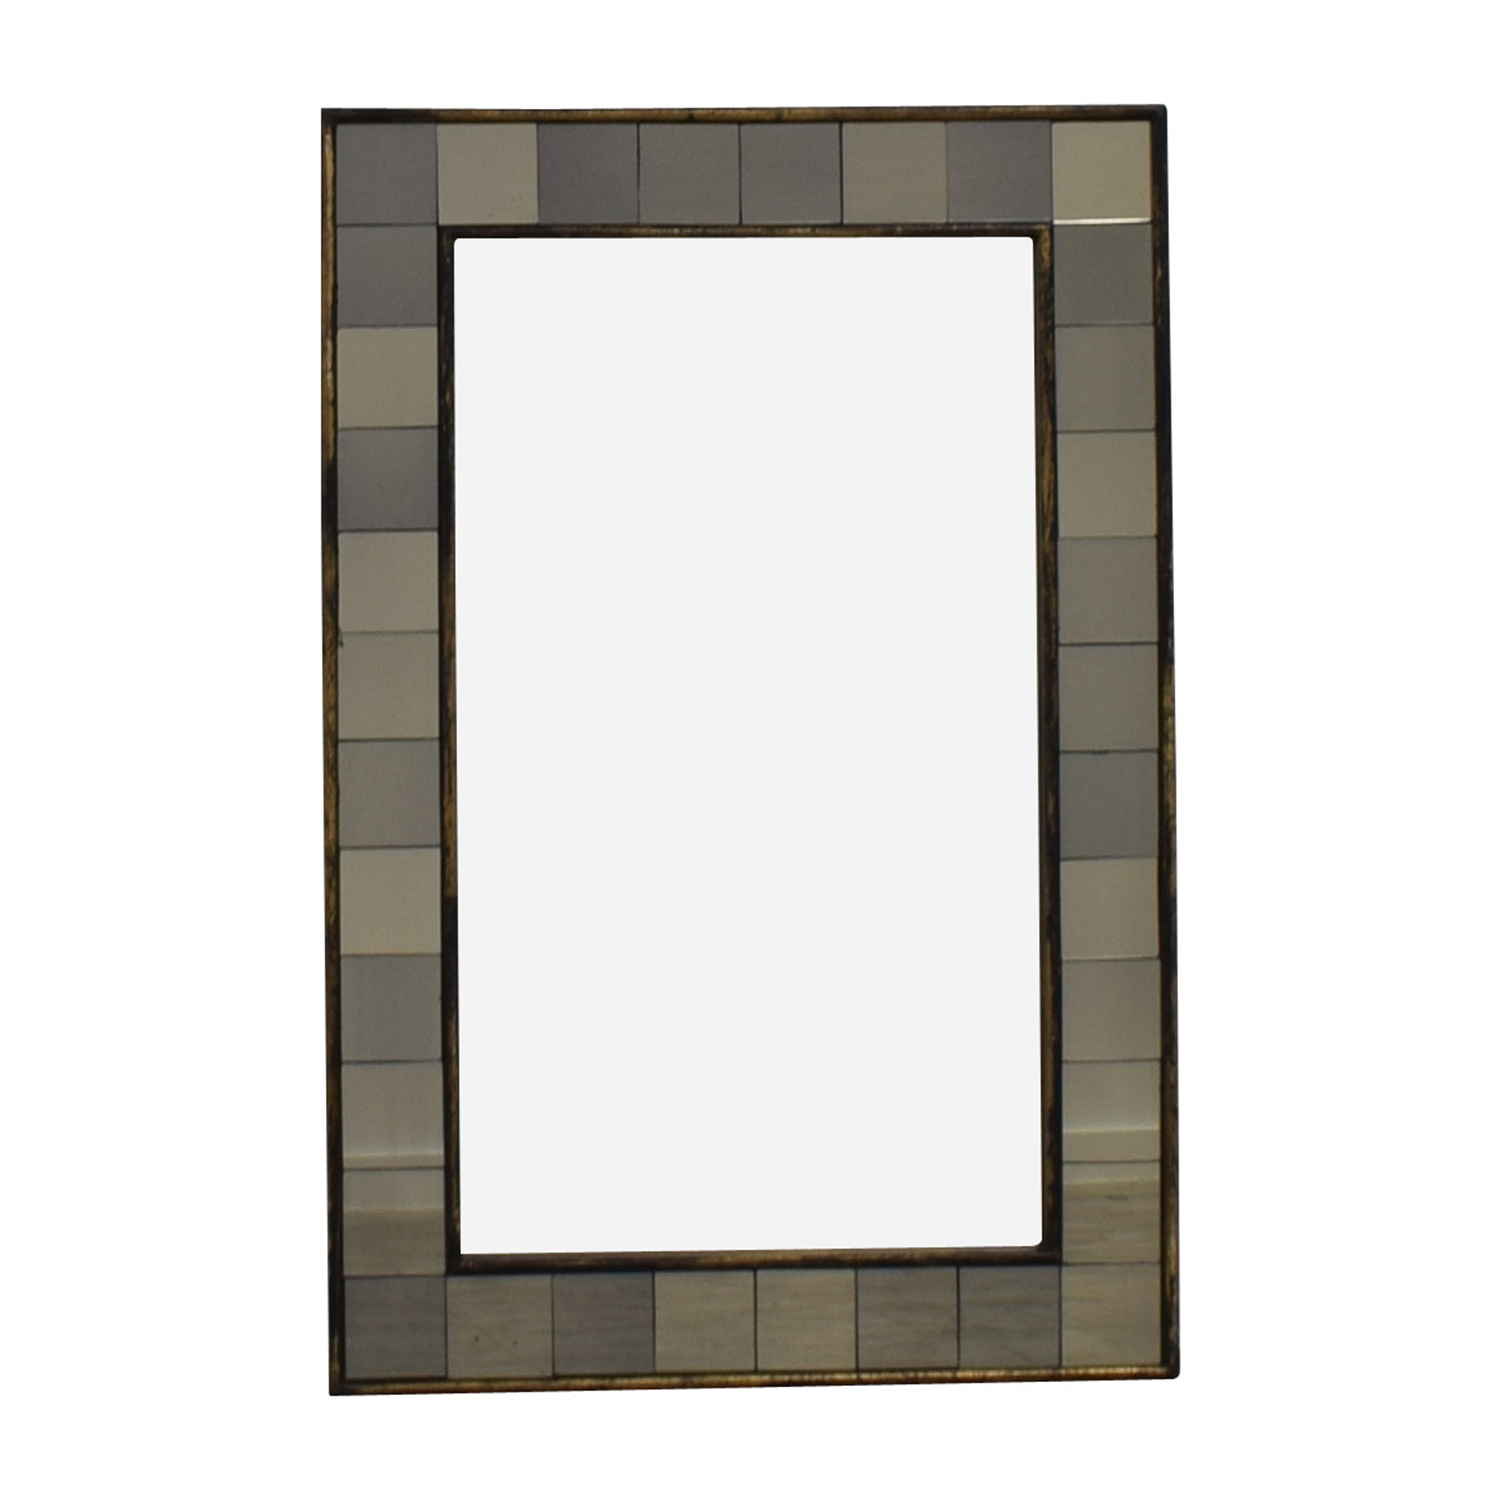 West Elm Antique Tiled Mirror / Mirrors